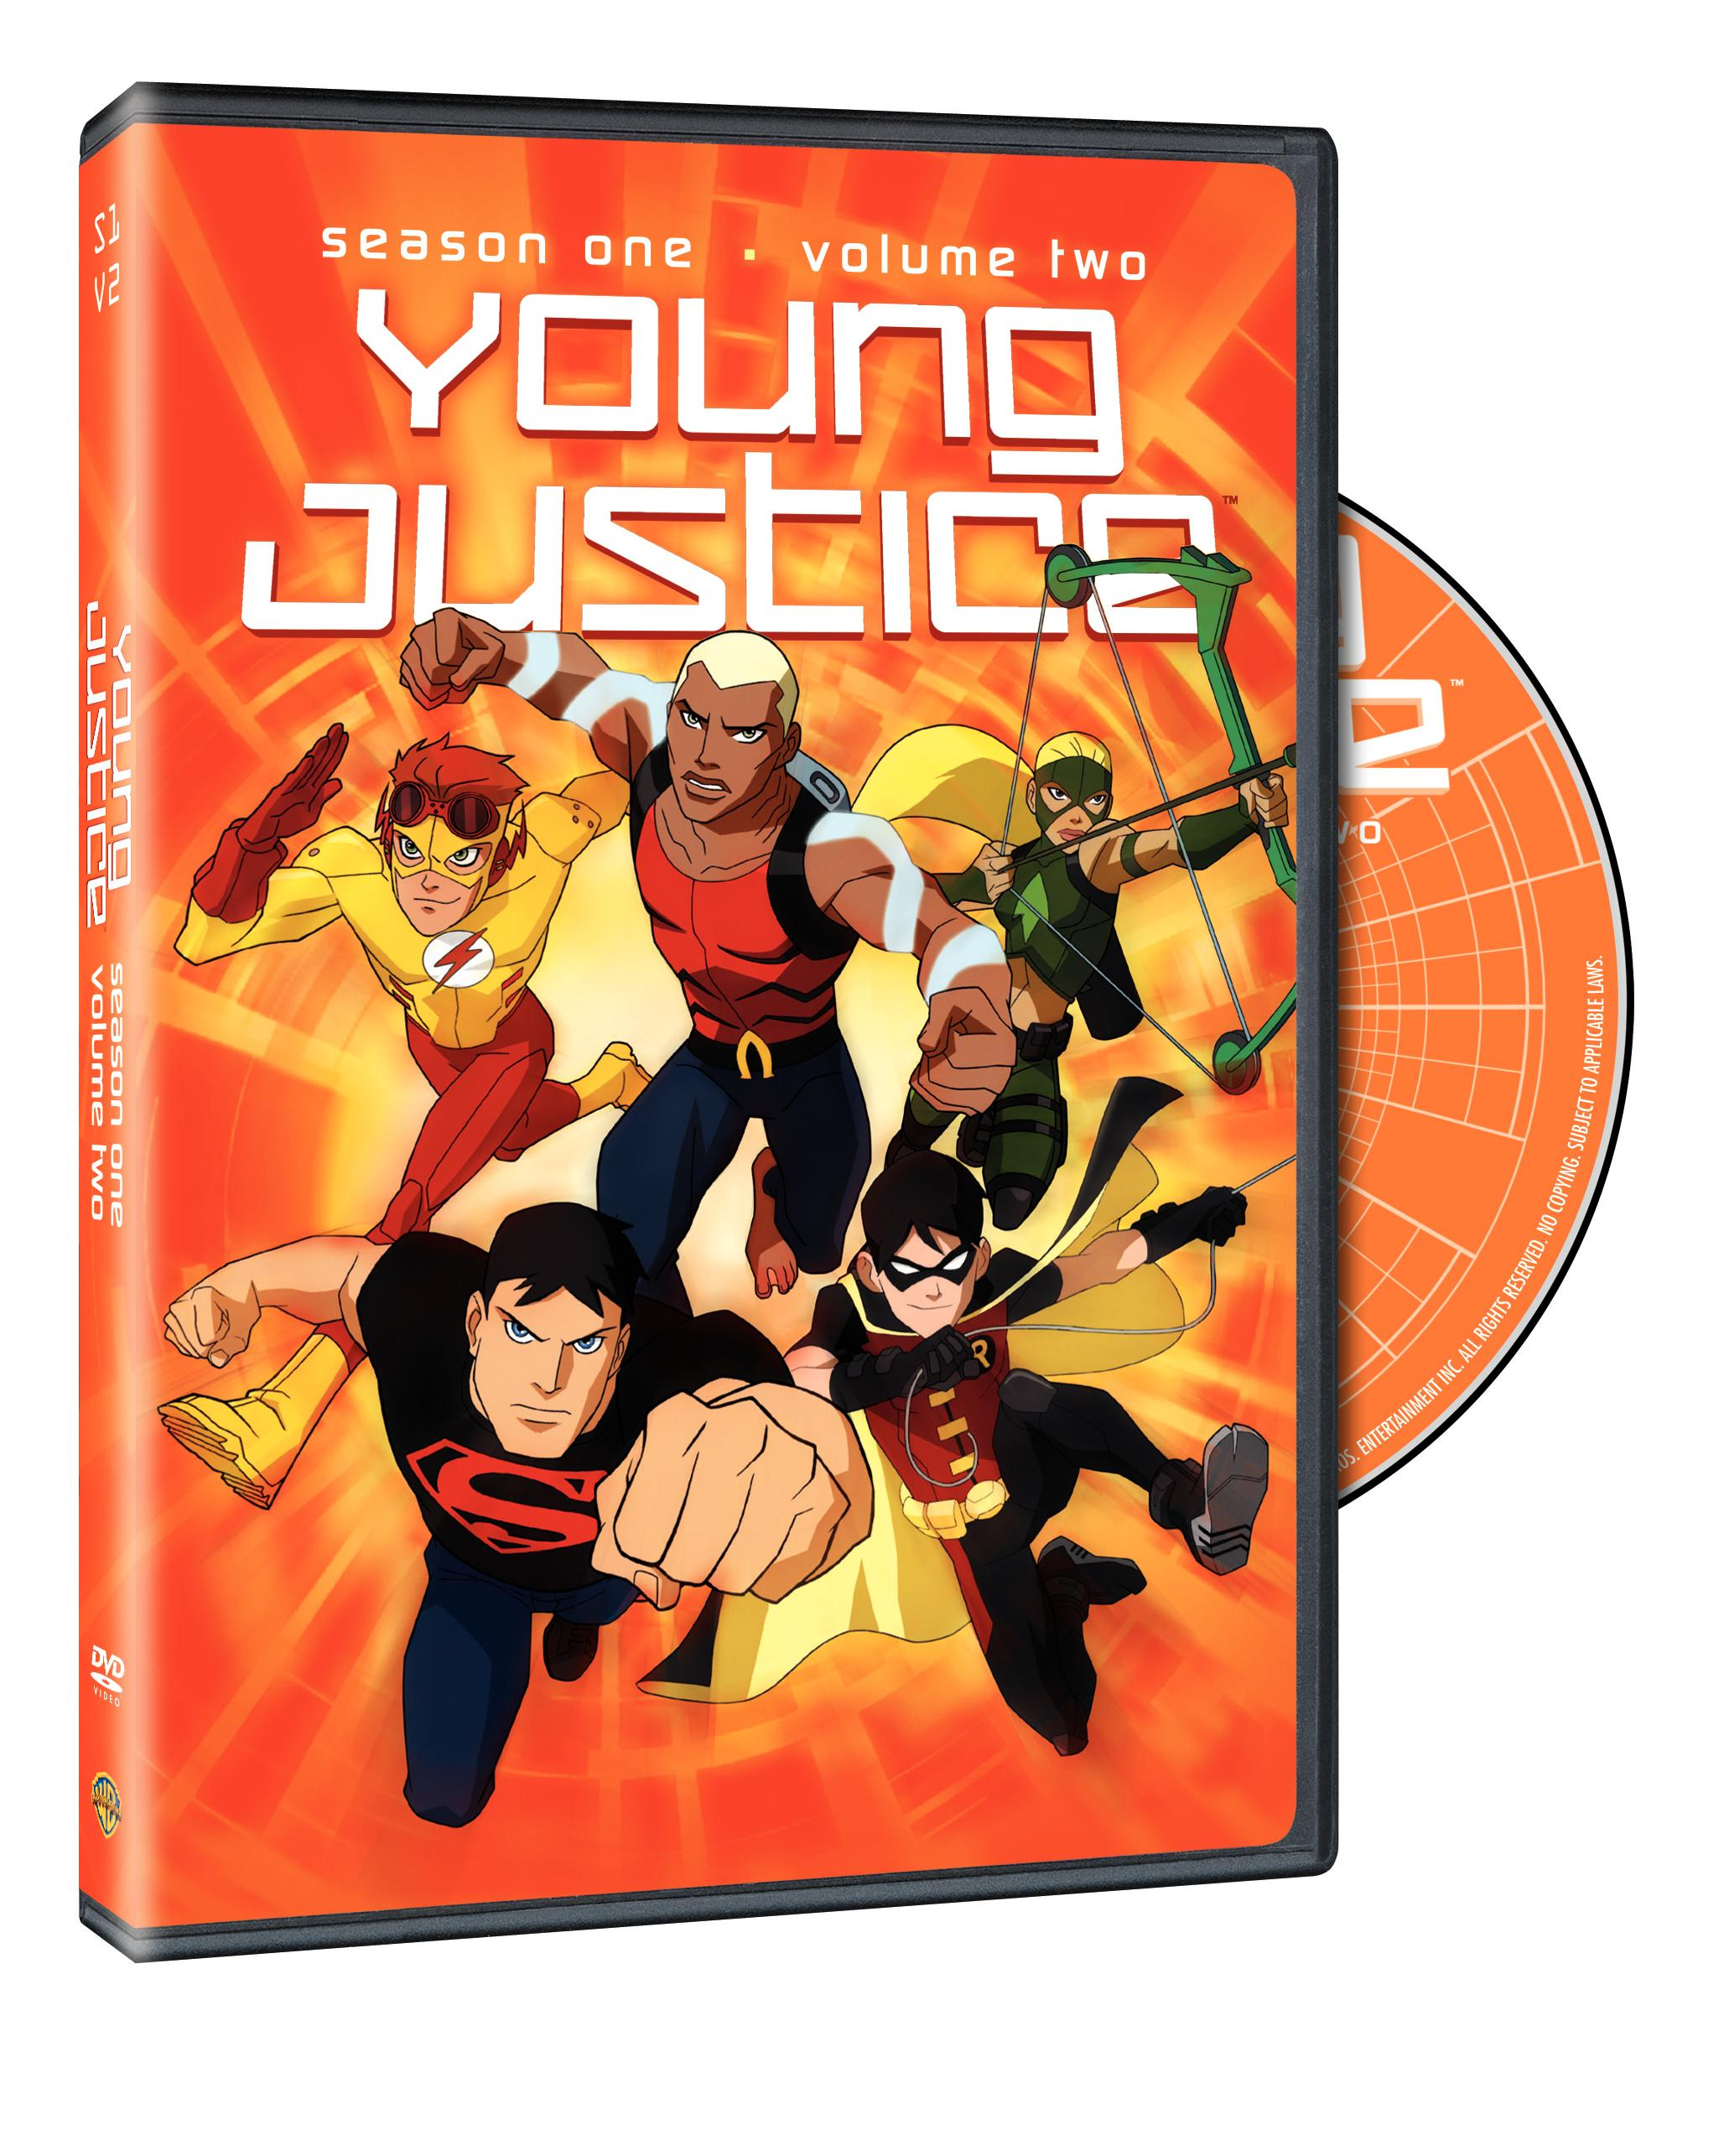 Young Justice Season 1 Volume 2 Cover Art